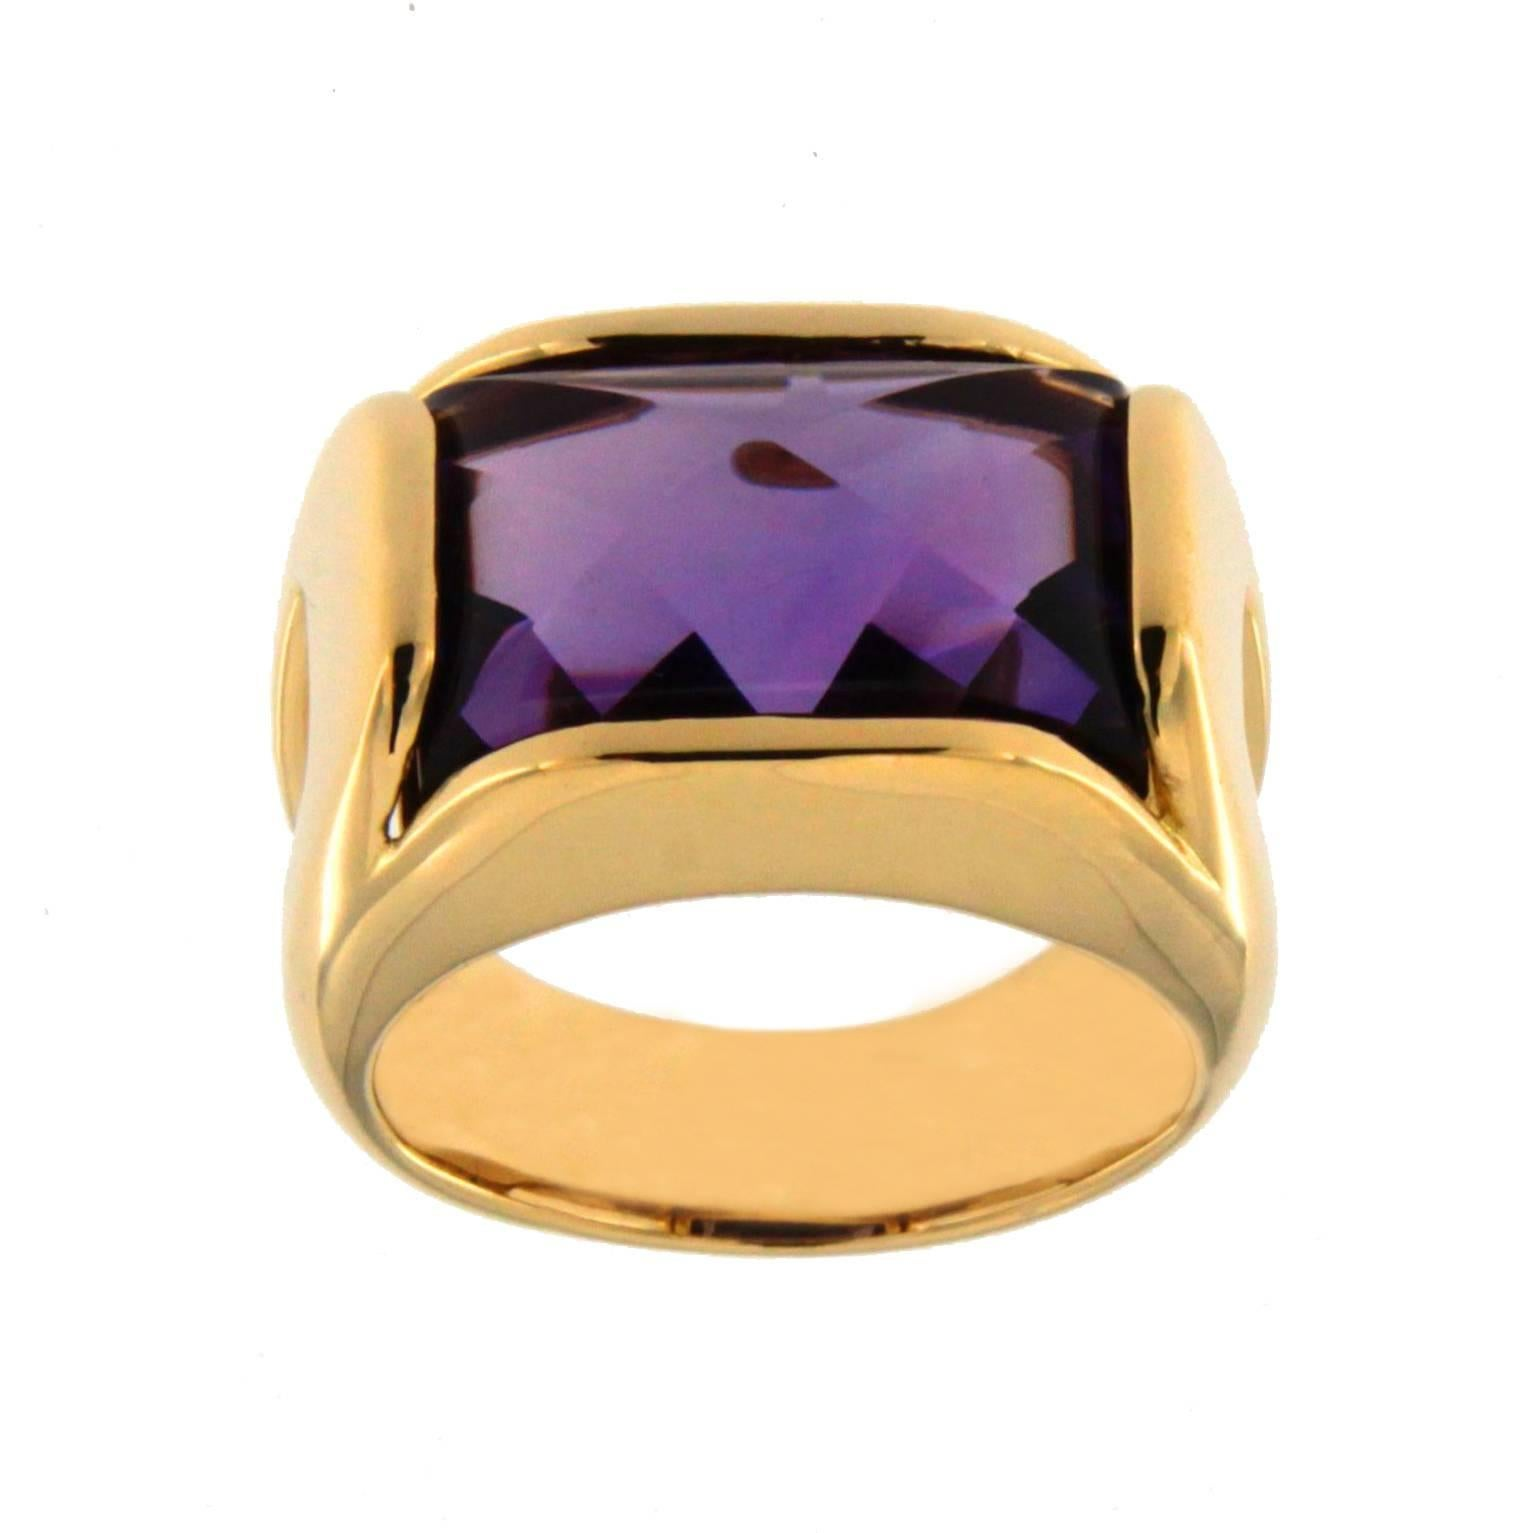 Gucci Amethyst Pave Yellow Gold Horsebit Ring For Sale at 1stdibs